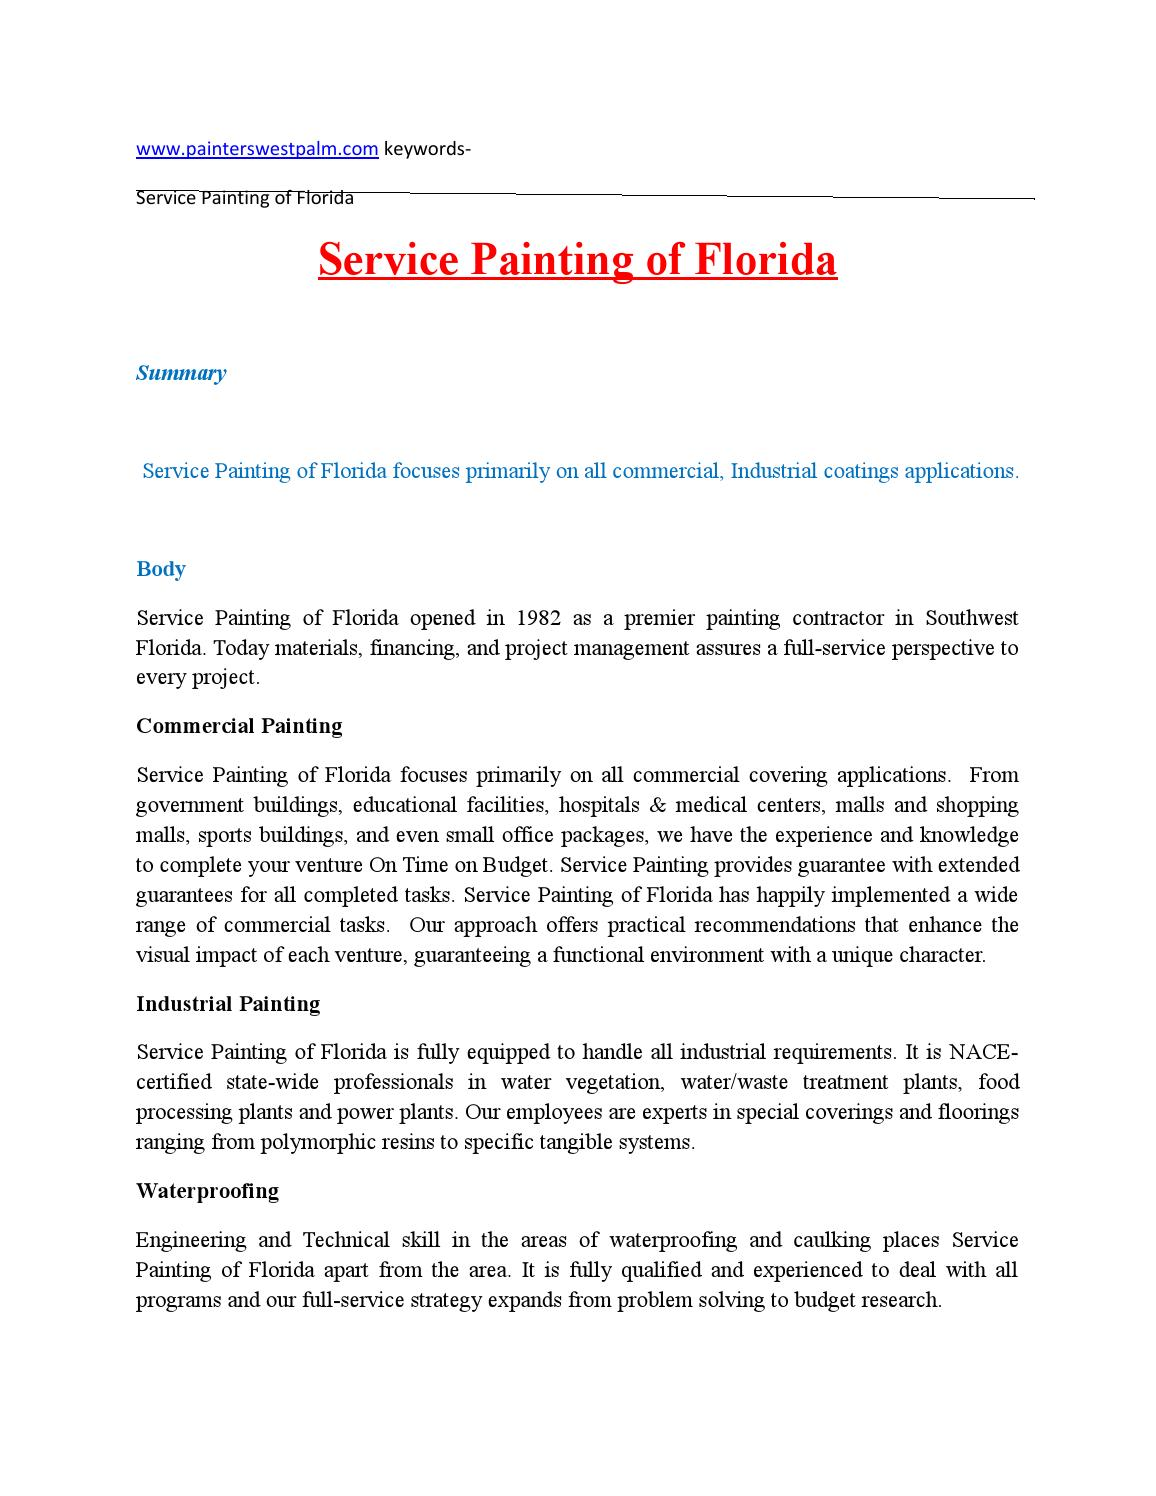 Service painting of florida by painterswestpalm issuu 1betcityfo Images